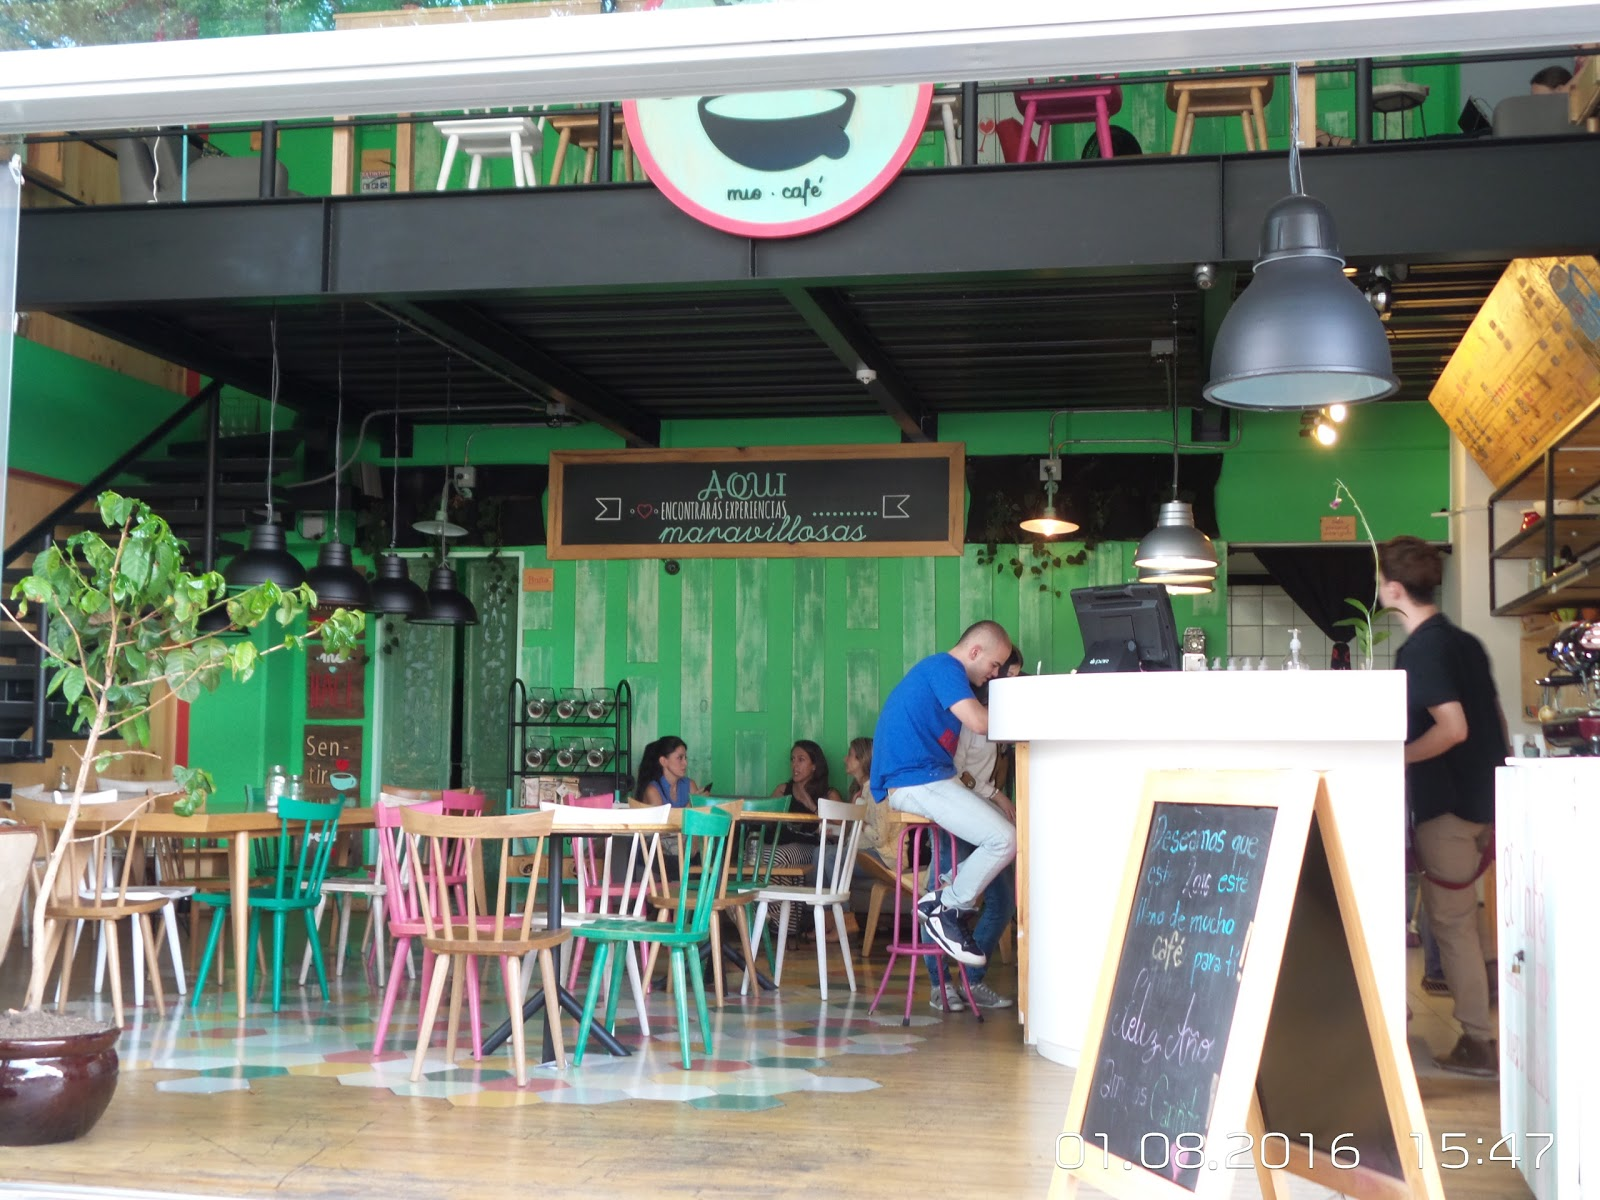 Cariñito Cafe: A Work-Friendly Place in Medellin